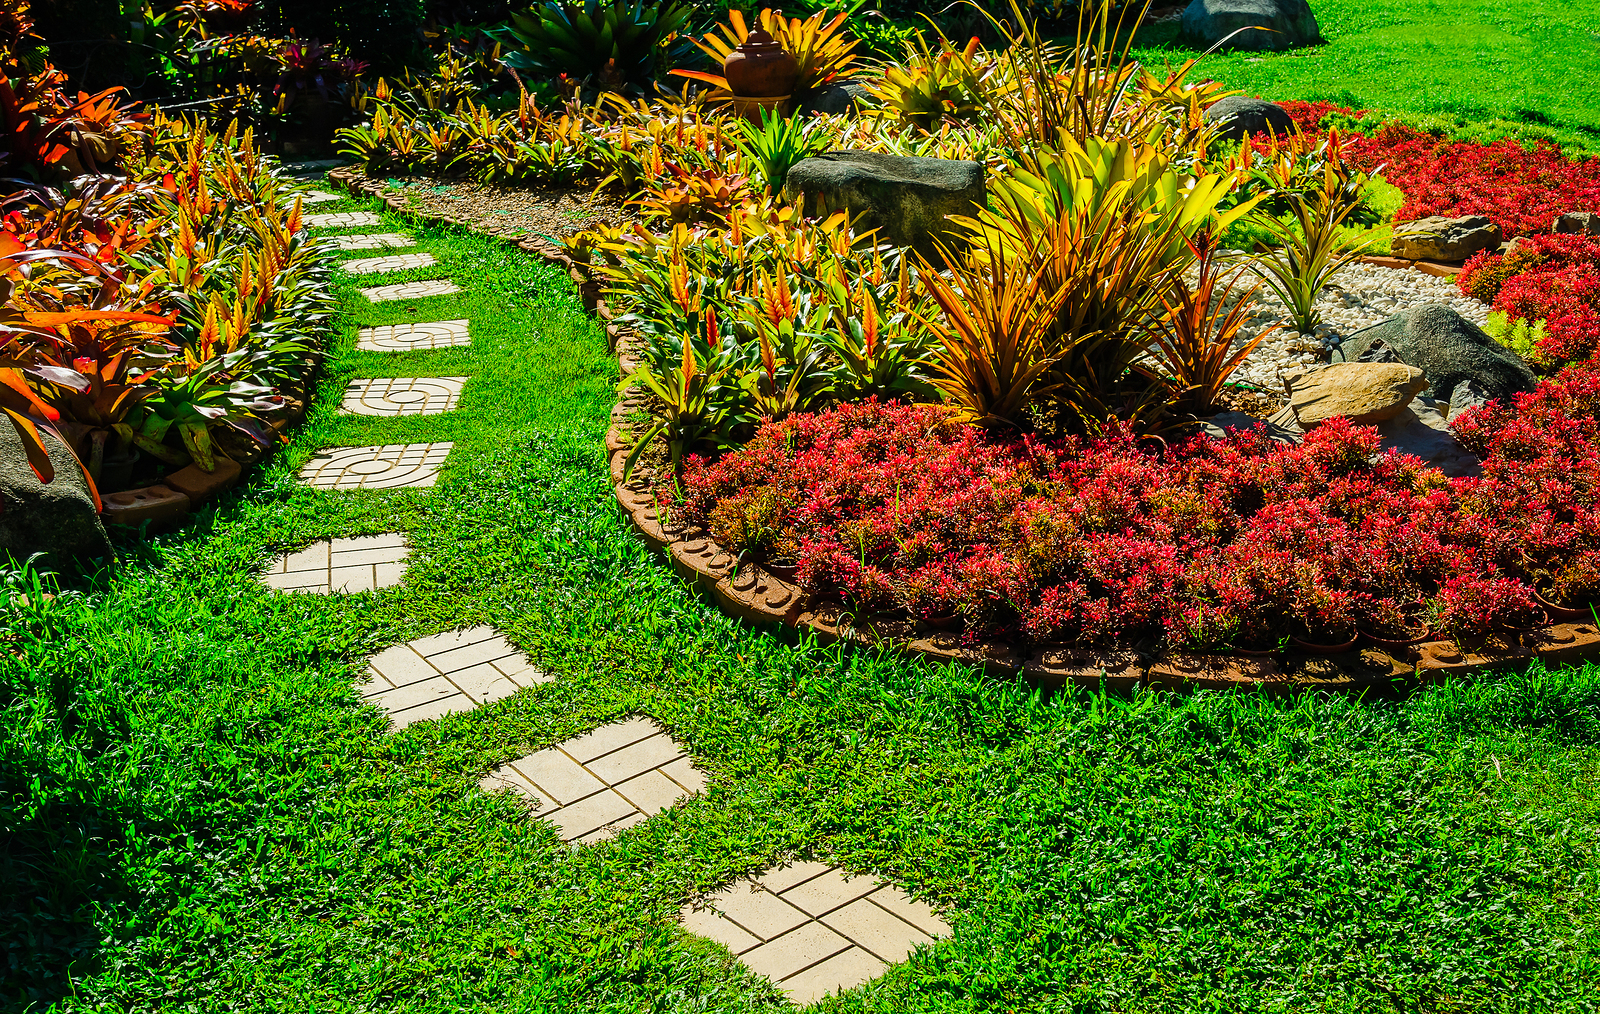 Pathway in garden, green lawns with bricks pathways, garden landscape design, Design background